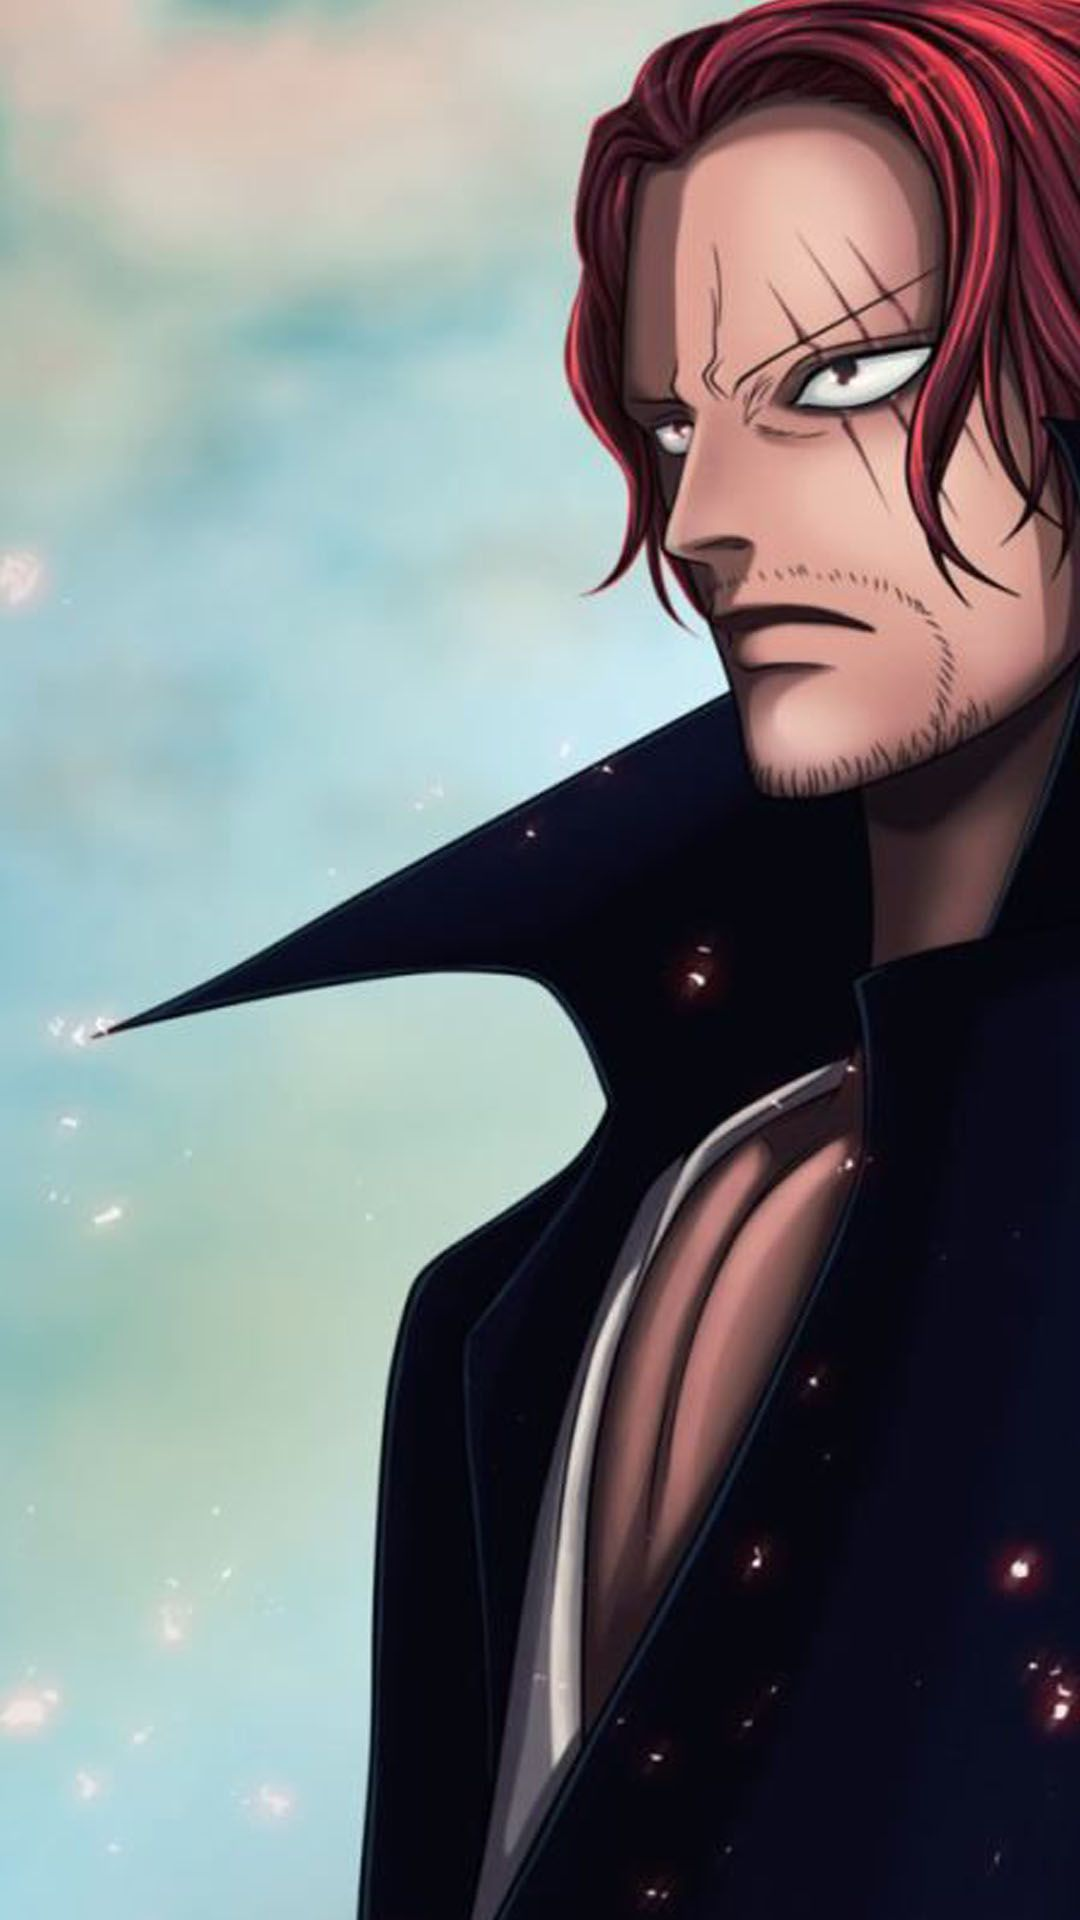 One piece wallpapers 3840x2160 ultra hd 4k desktop backgrounds source : One Piece Wallpaper Shanks - Wallpaper Images Android PC HD